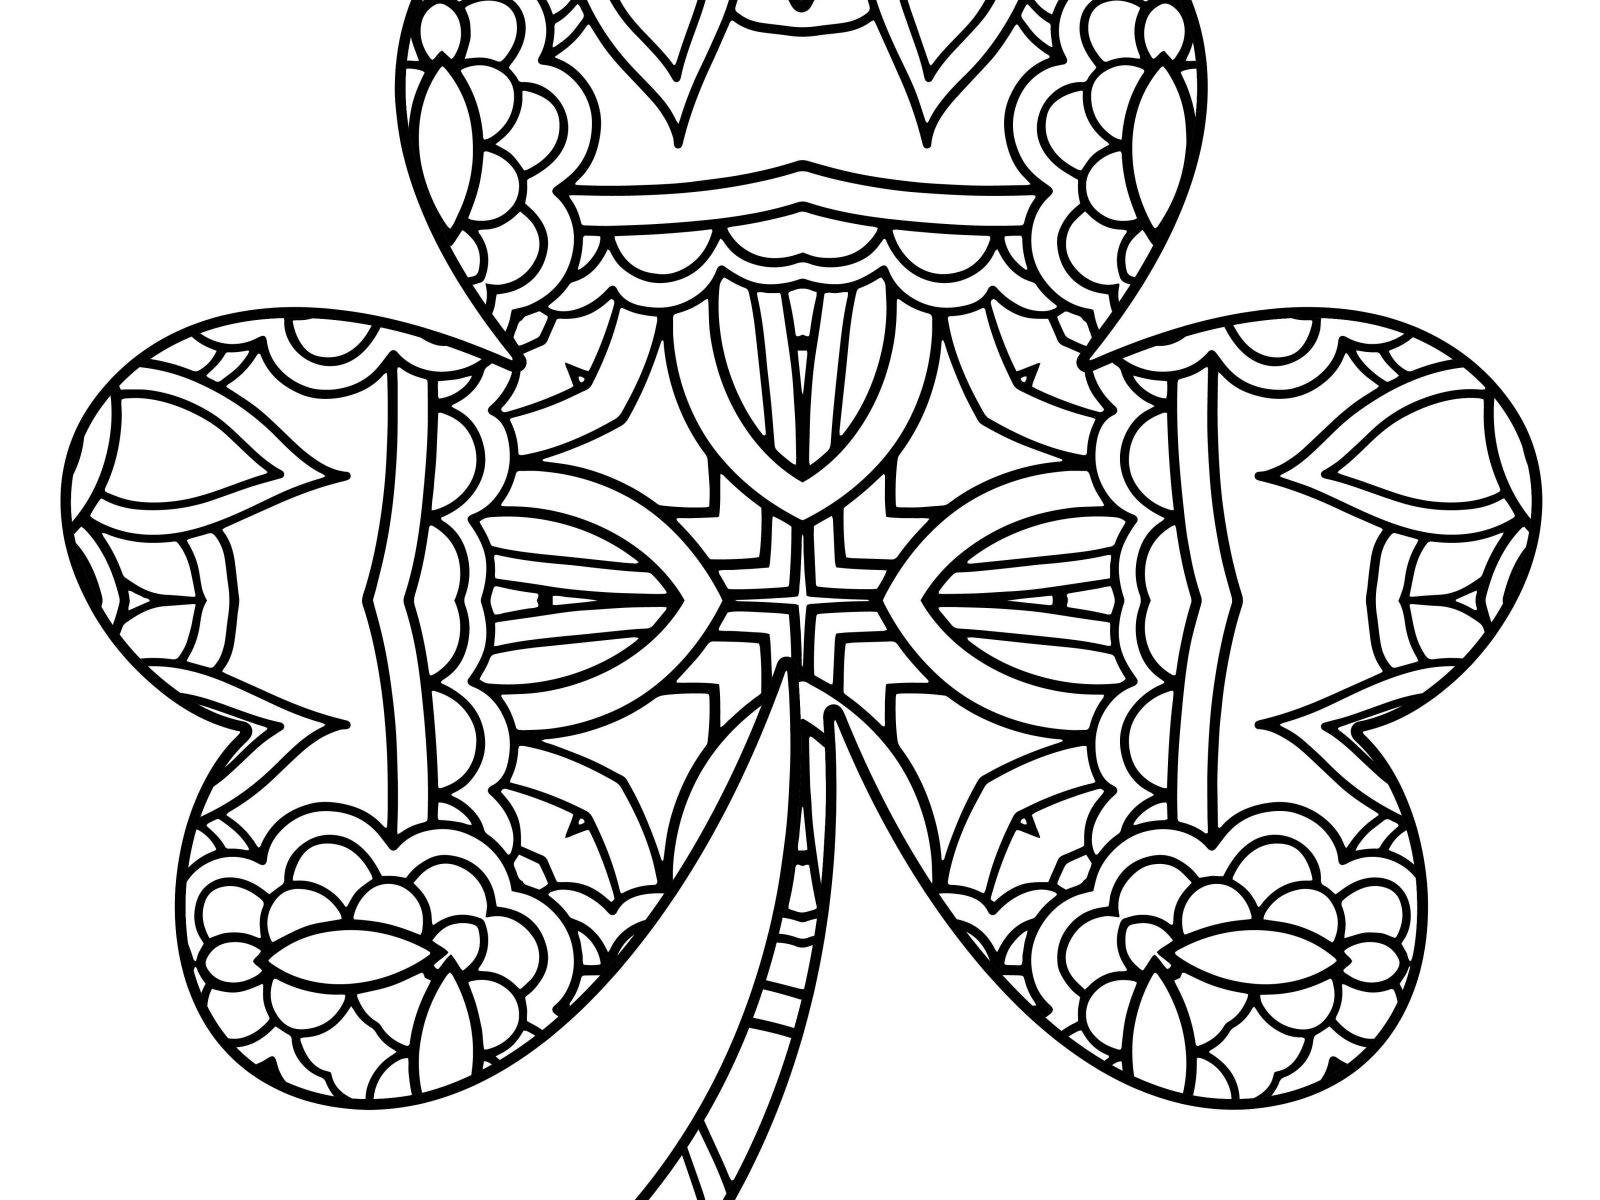 Shamrock Coloring Pages Free At Getdrawings Free Download